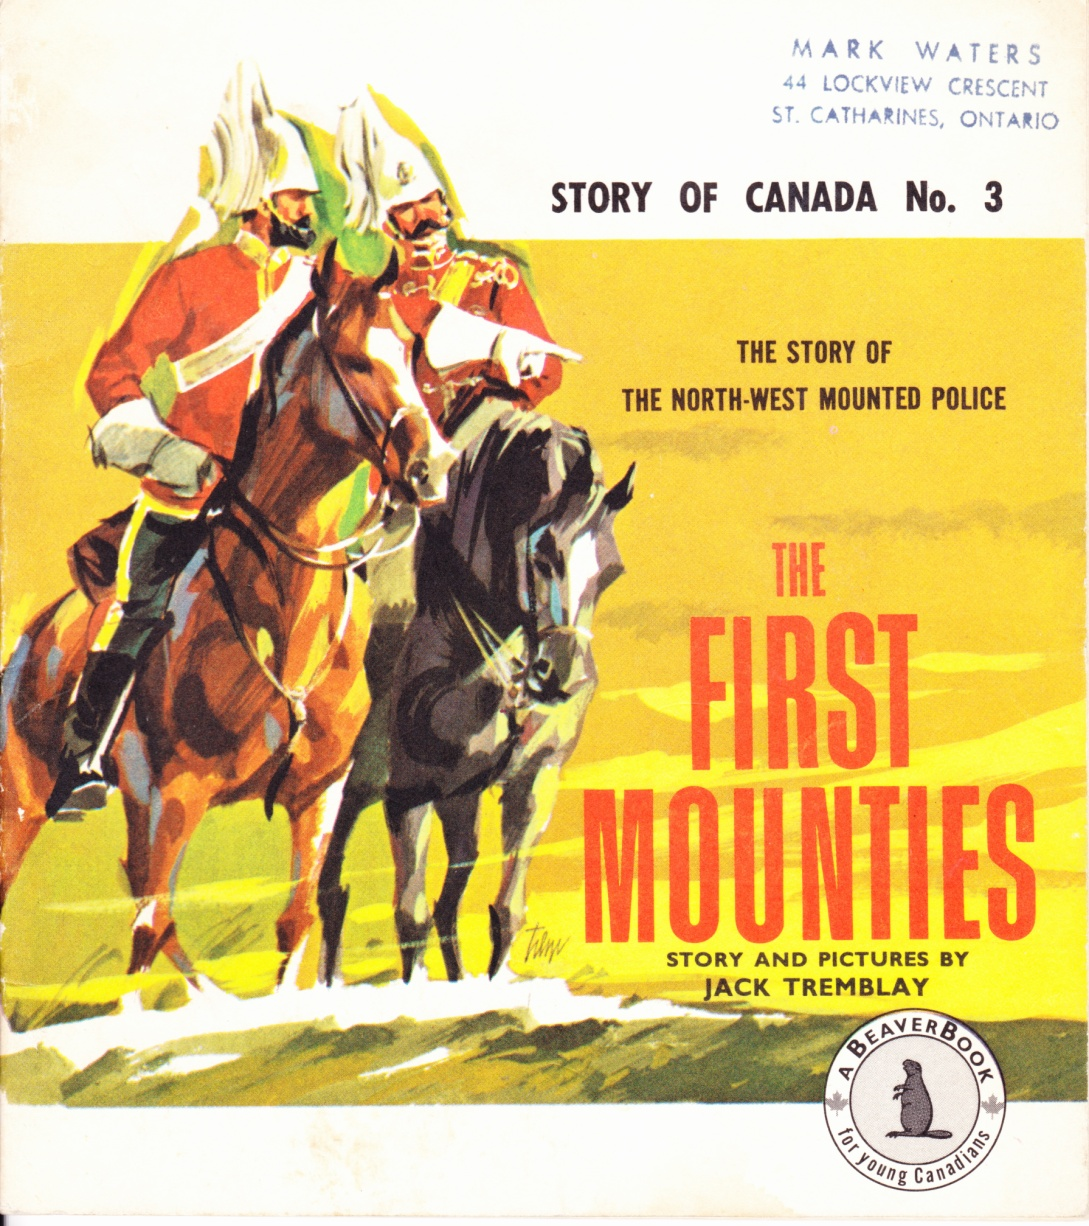 C:\Users\Robert\Documents\CARTOONING ILLUSTRATION ANIMATION\IMAGE BY CARTOONIST\T\TRMBLAY Jack, The First Mounties, 1967, fc.jpg